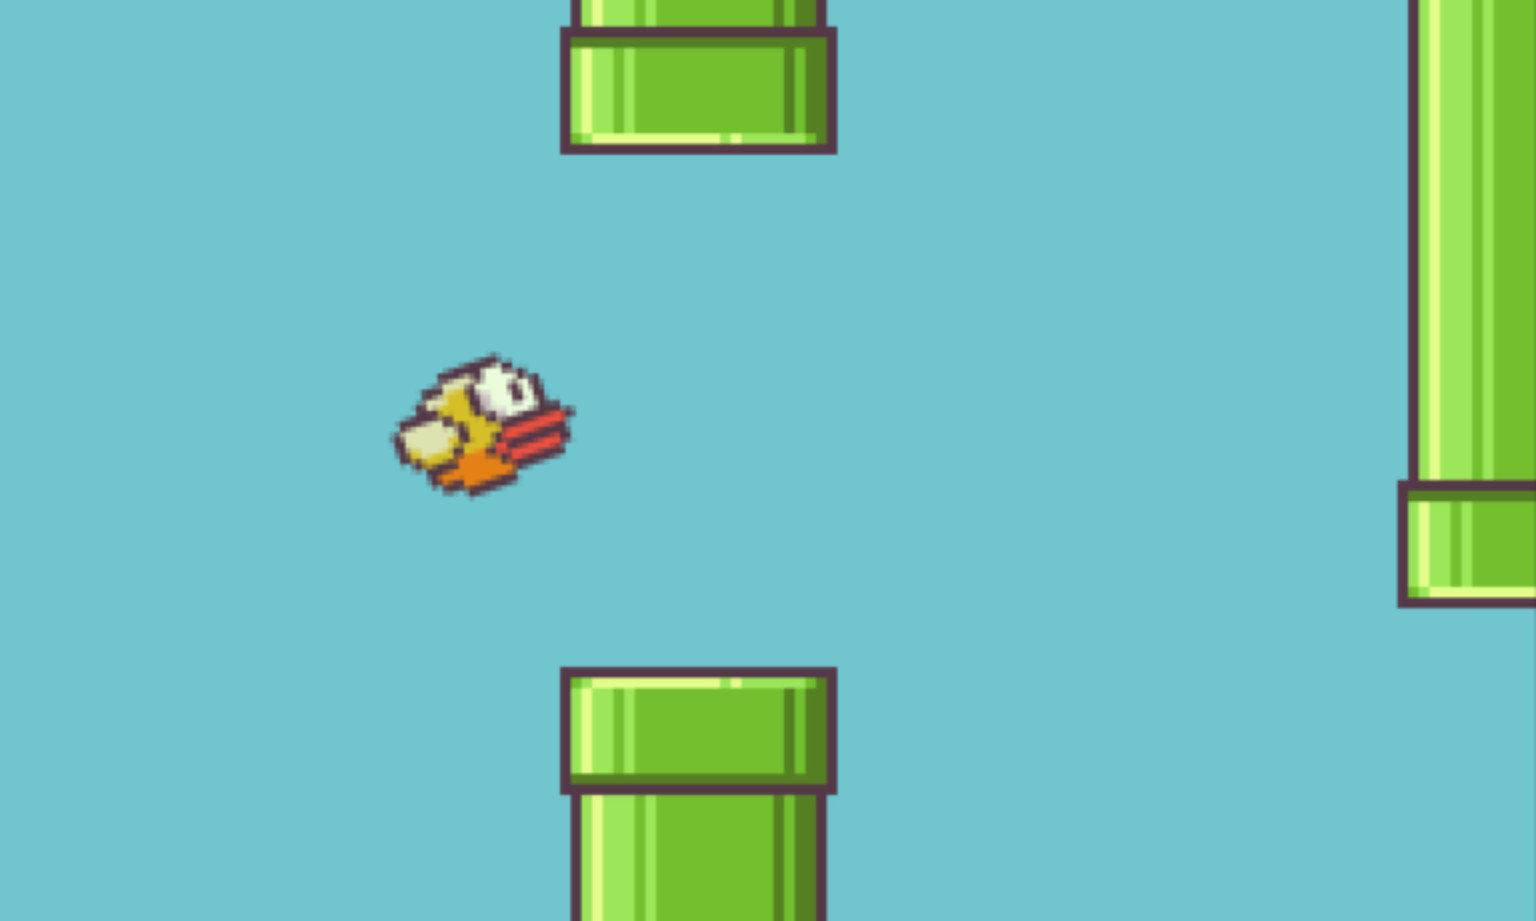 flappy bird Flappy bird is simultaneously everything that's right and wrong about video games you'll play it, you'll obsess over it, but you'll never really like it.